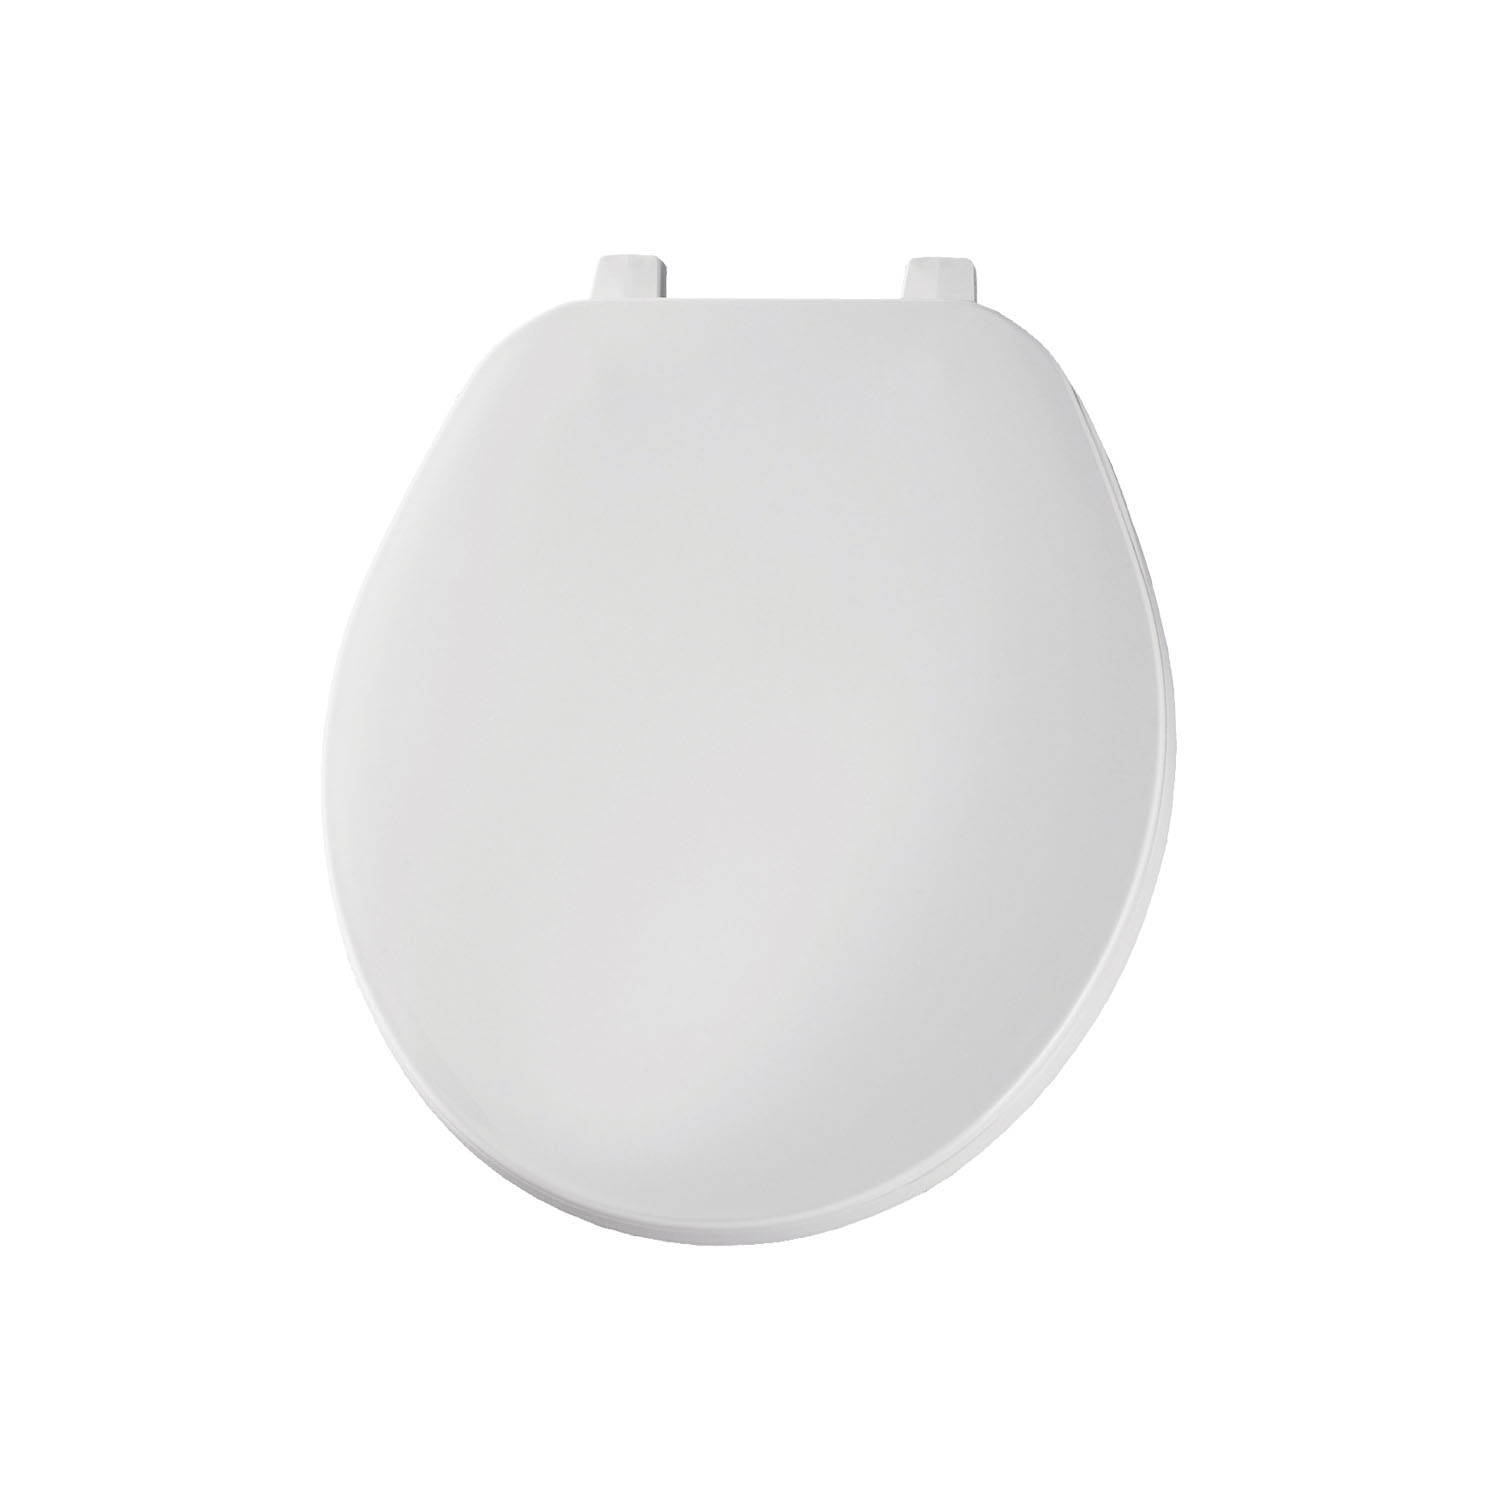 Bemis® 70 000 Toilet Seat With Cover, Round Bowl, Closed Front, Plastic, Top-Tite® Hinge, White, Domestic